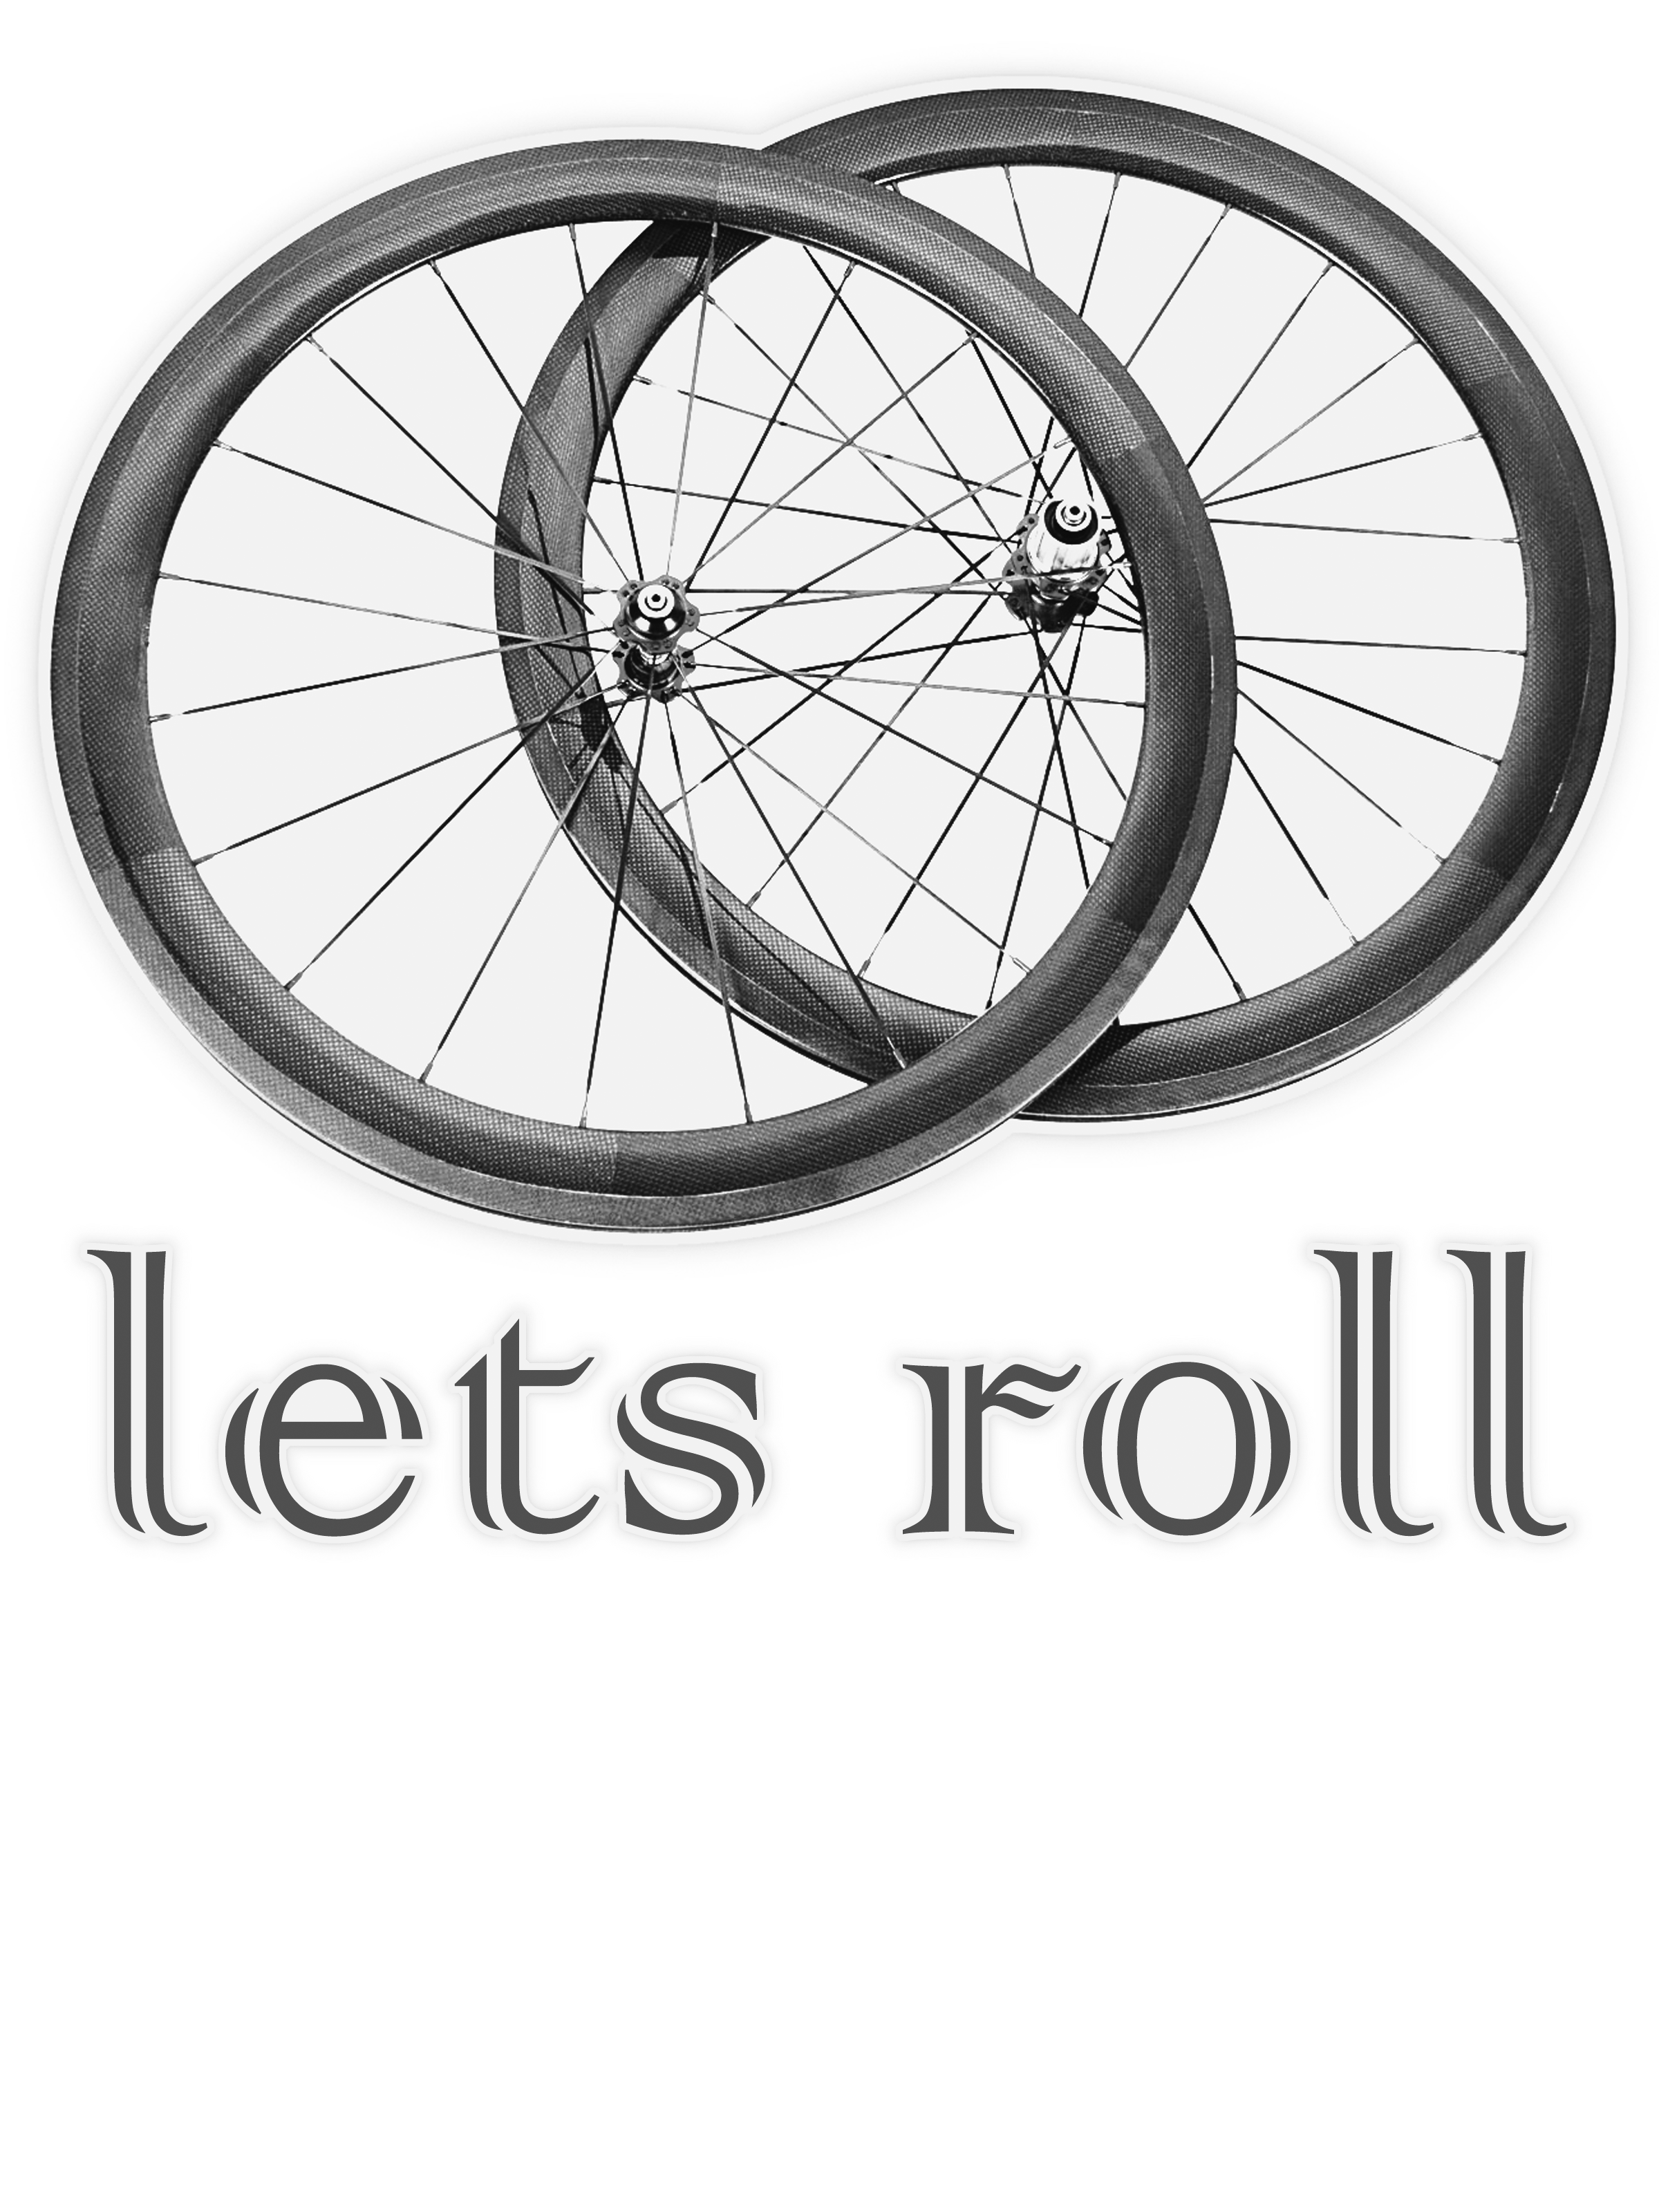 0019 – Lets Roll